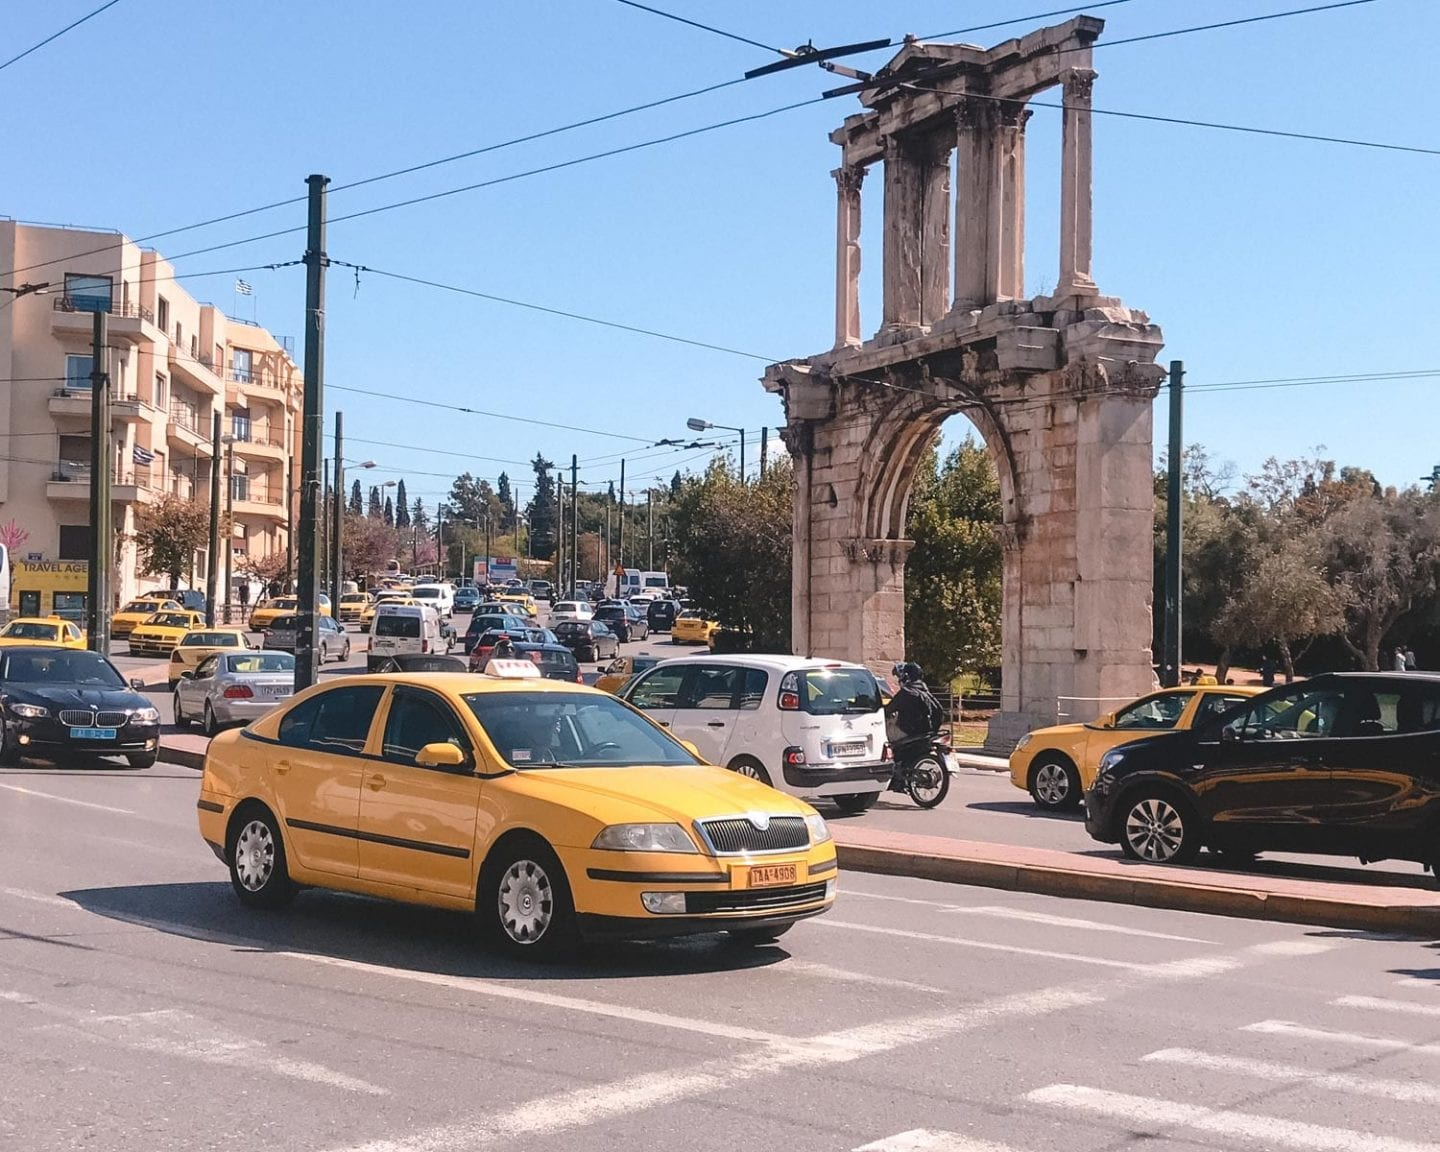 taxi in athens